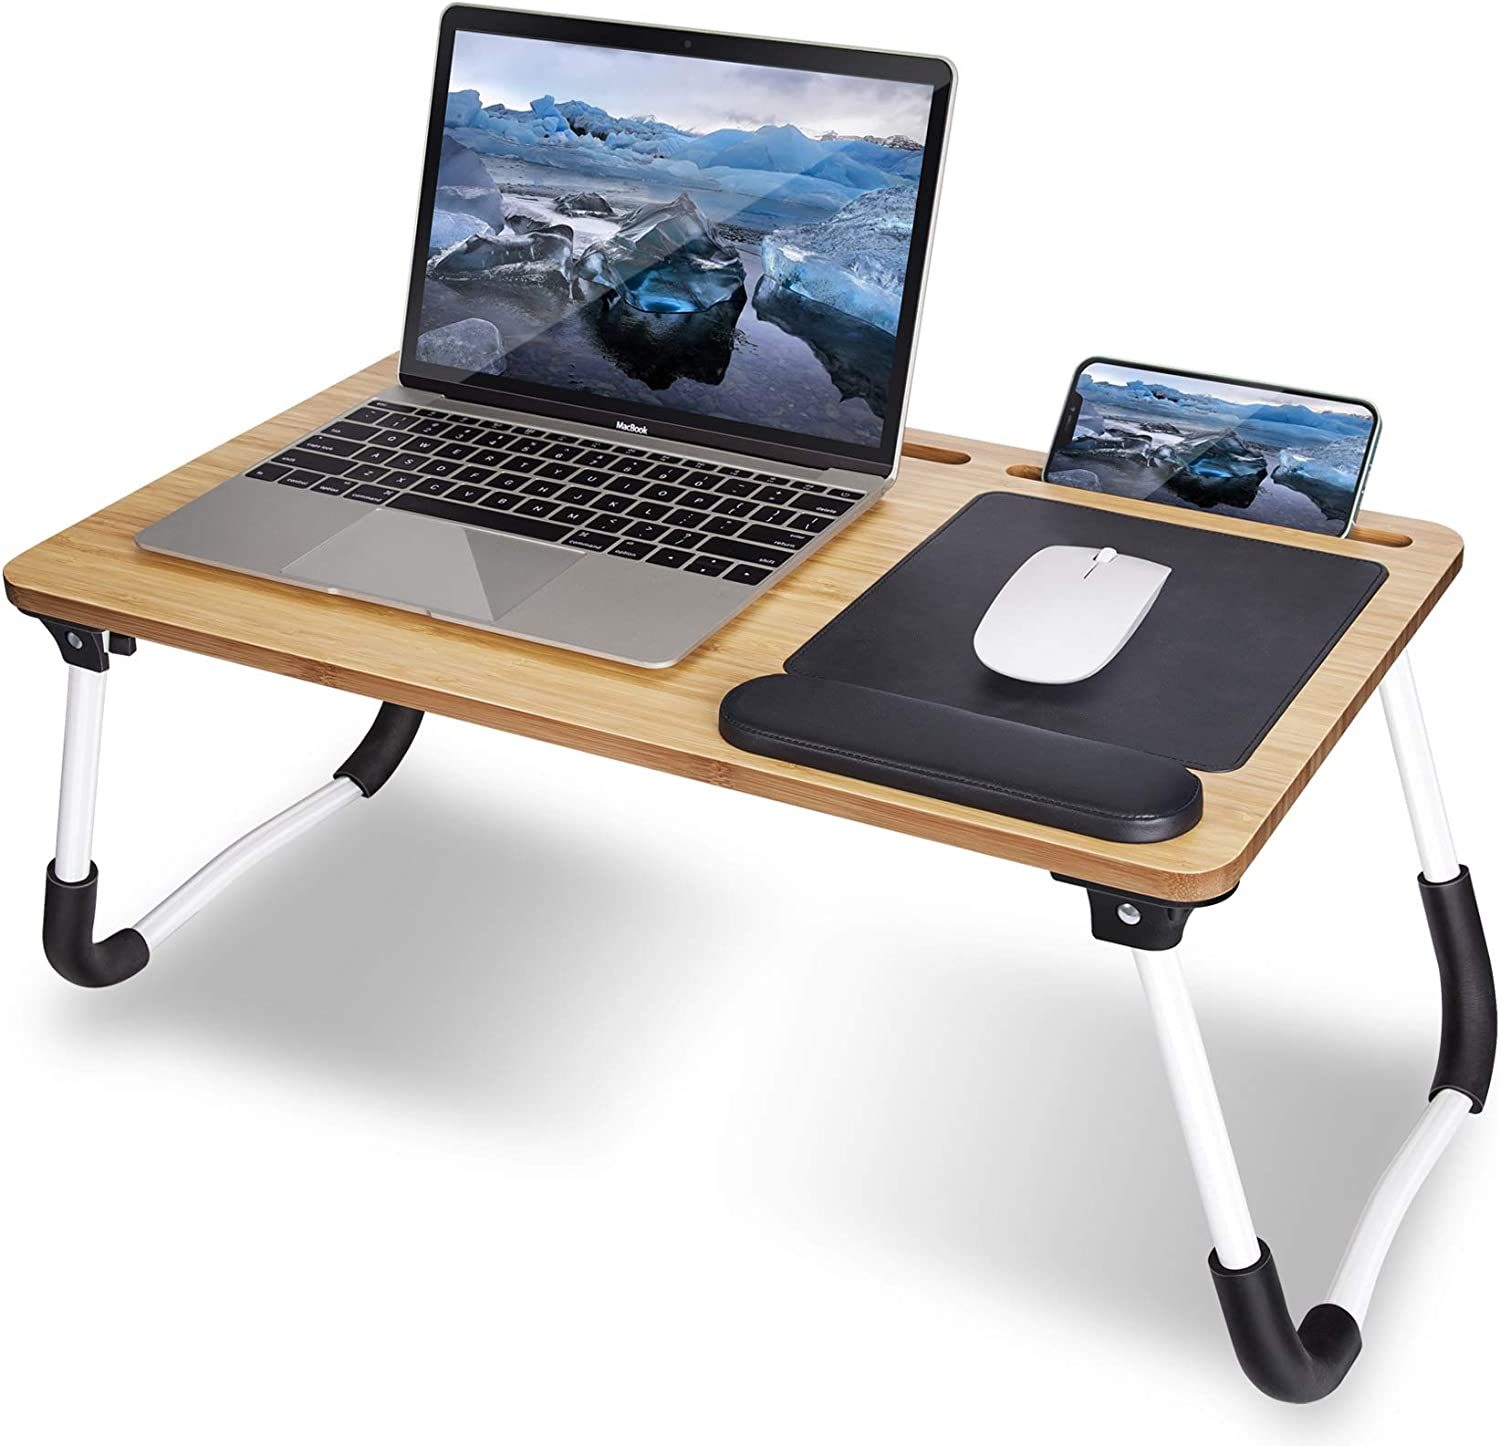 Lap Desk, Laptop Desk for Lap with Mouse Pad: Bamboo Lap Desk for Working from Home on Bed/Couch/Sofa/Floor